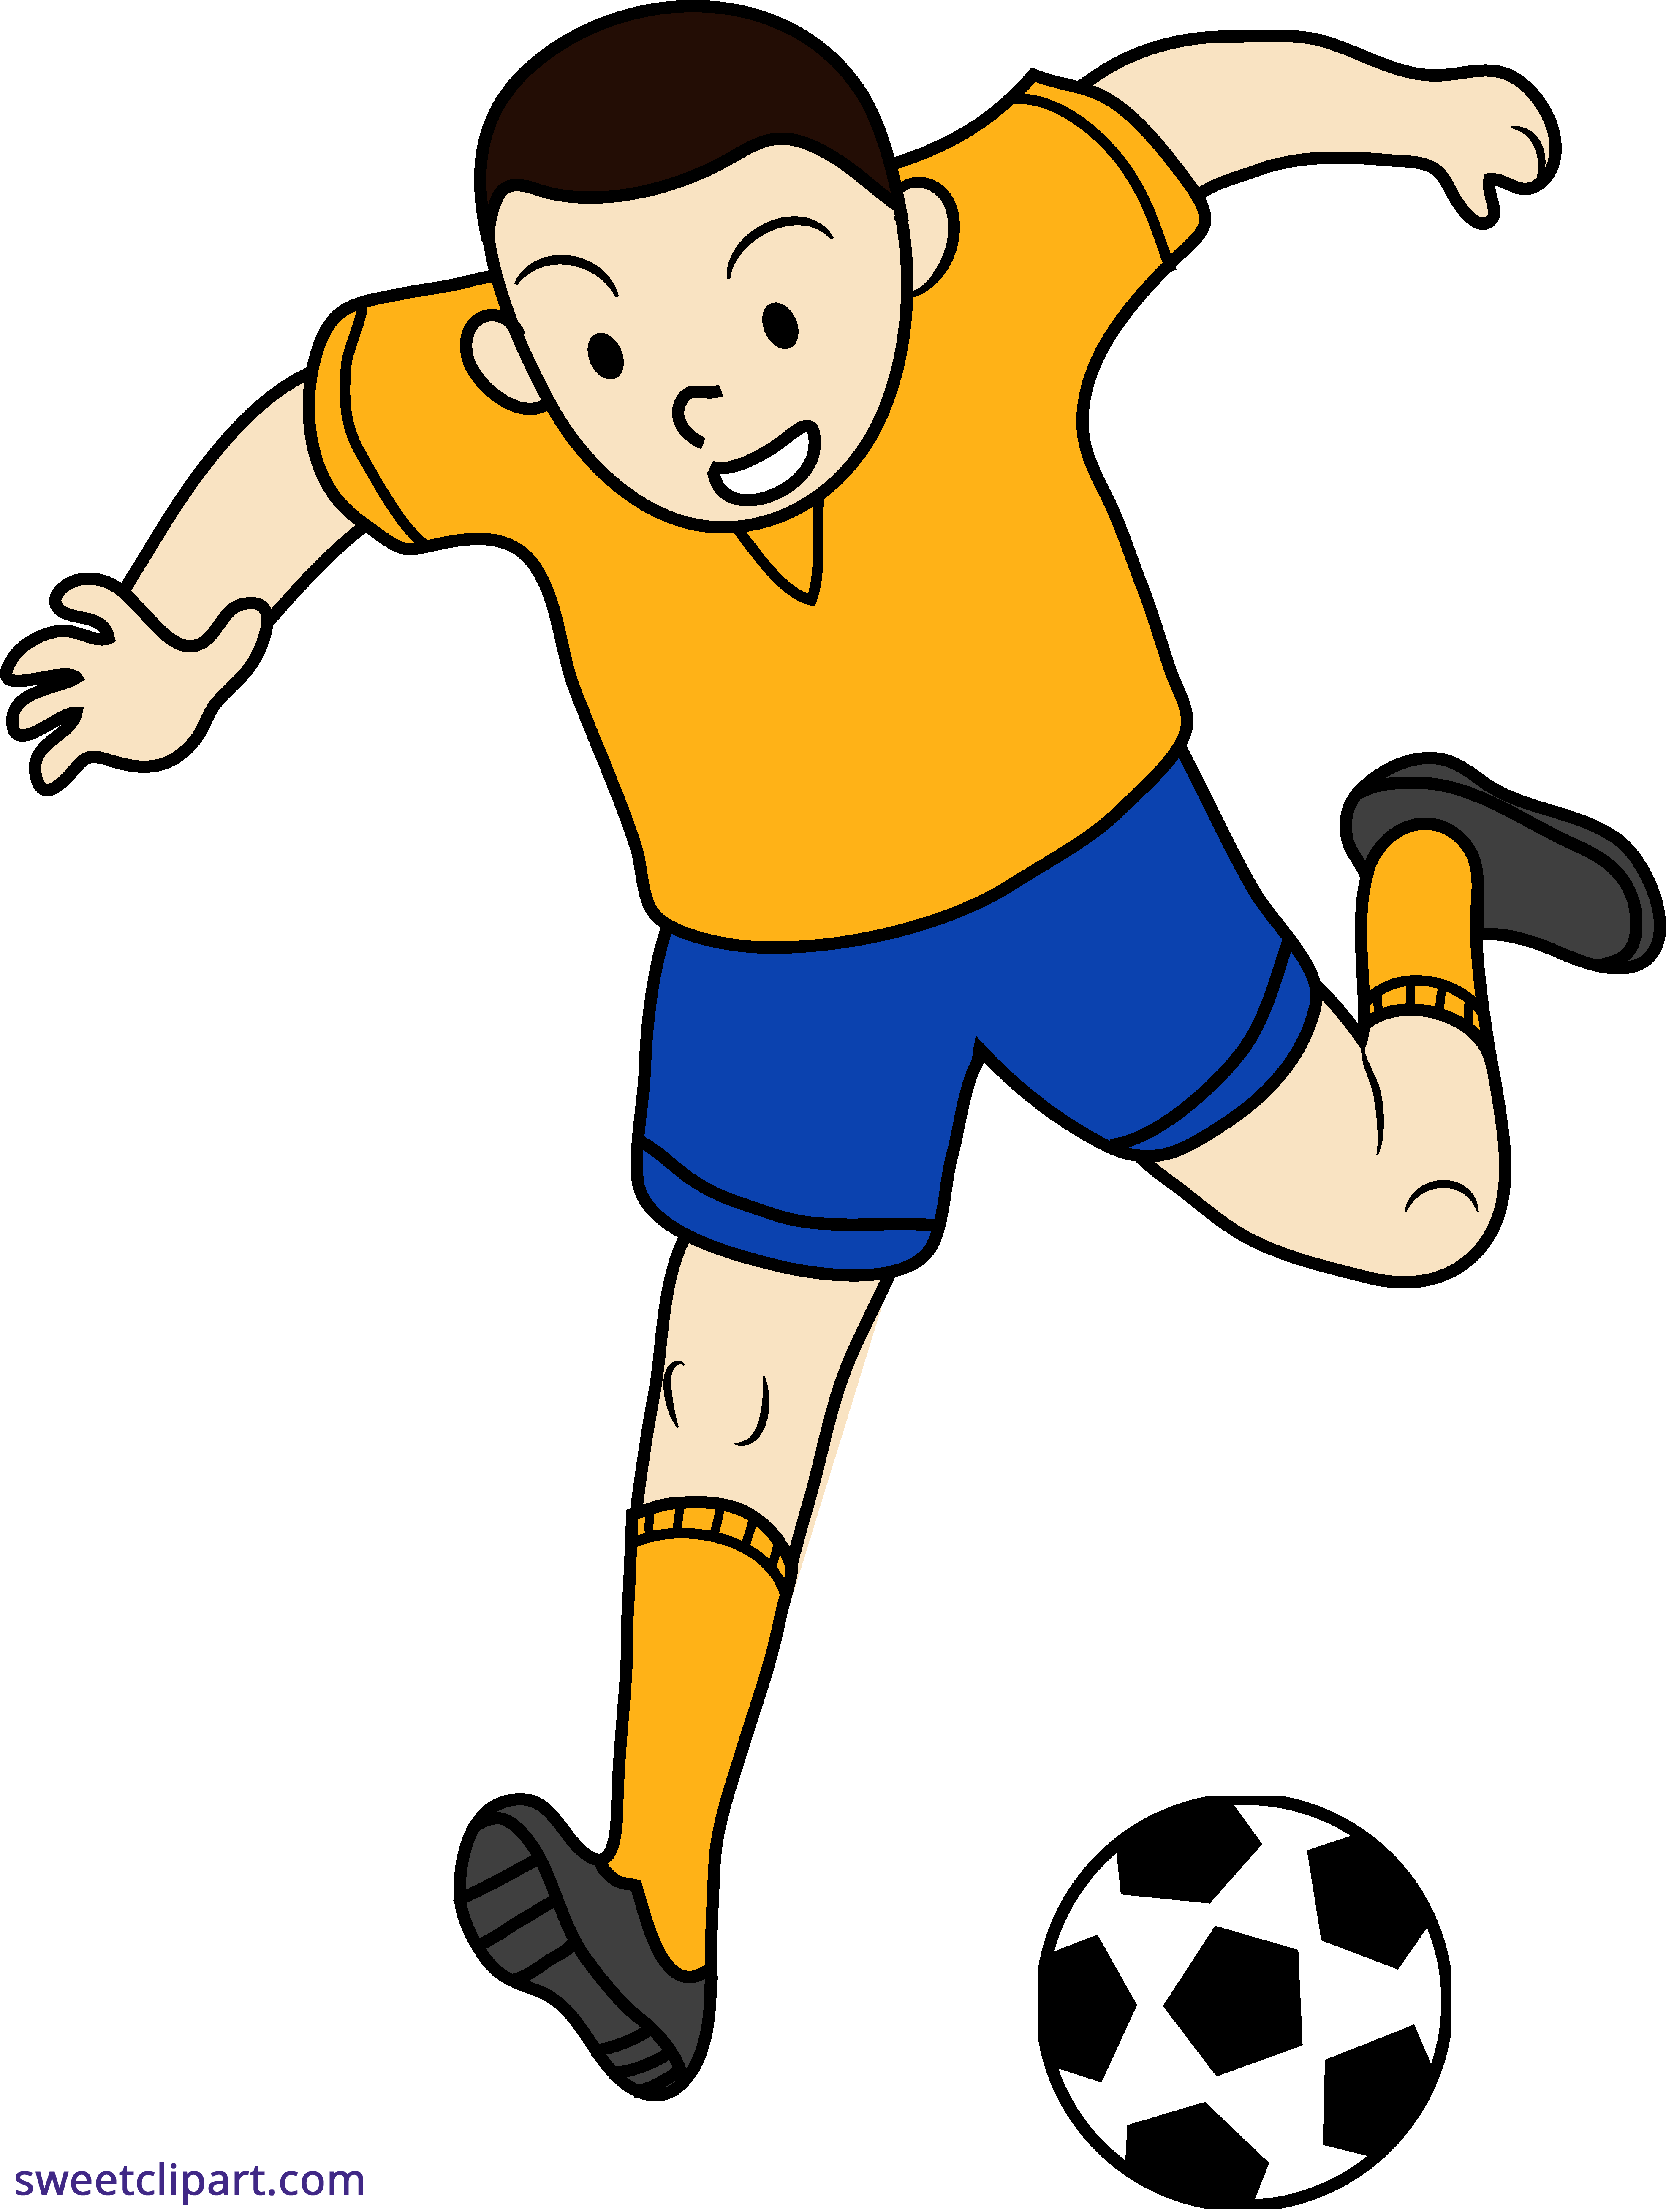 vector free library Soccer futbol kid sweet. Action clipart football player